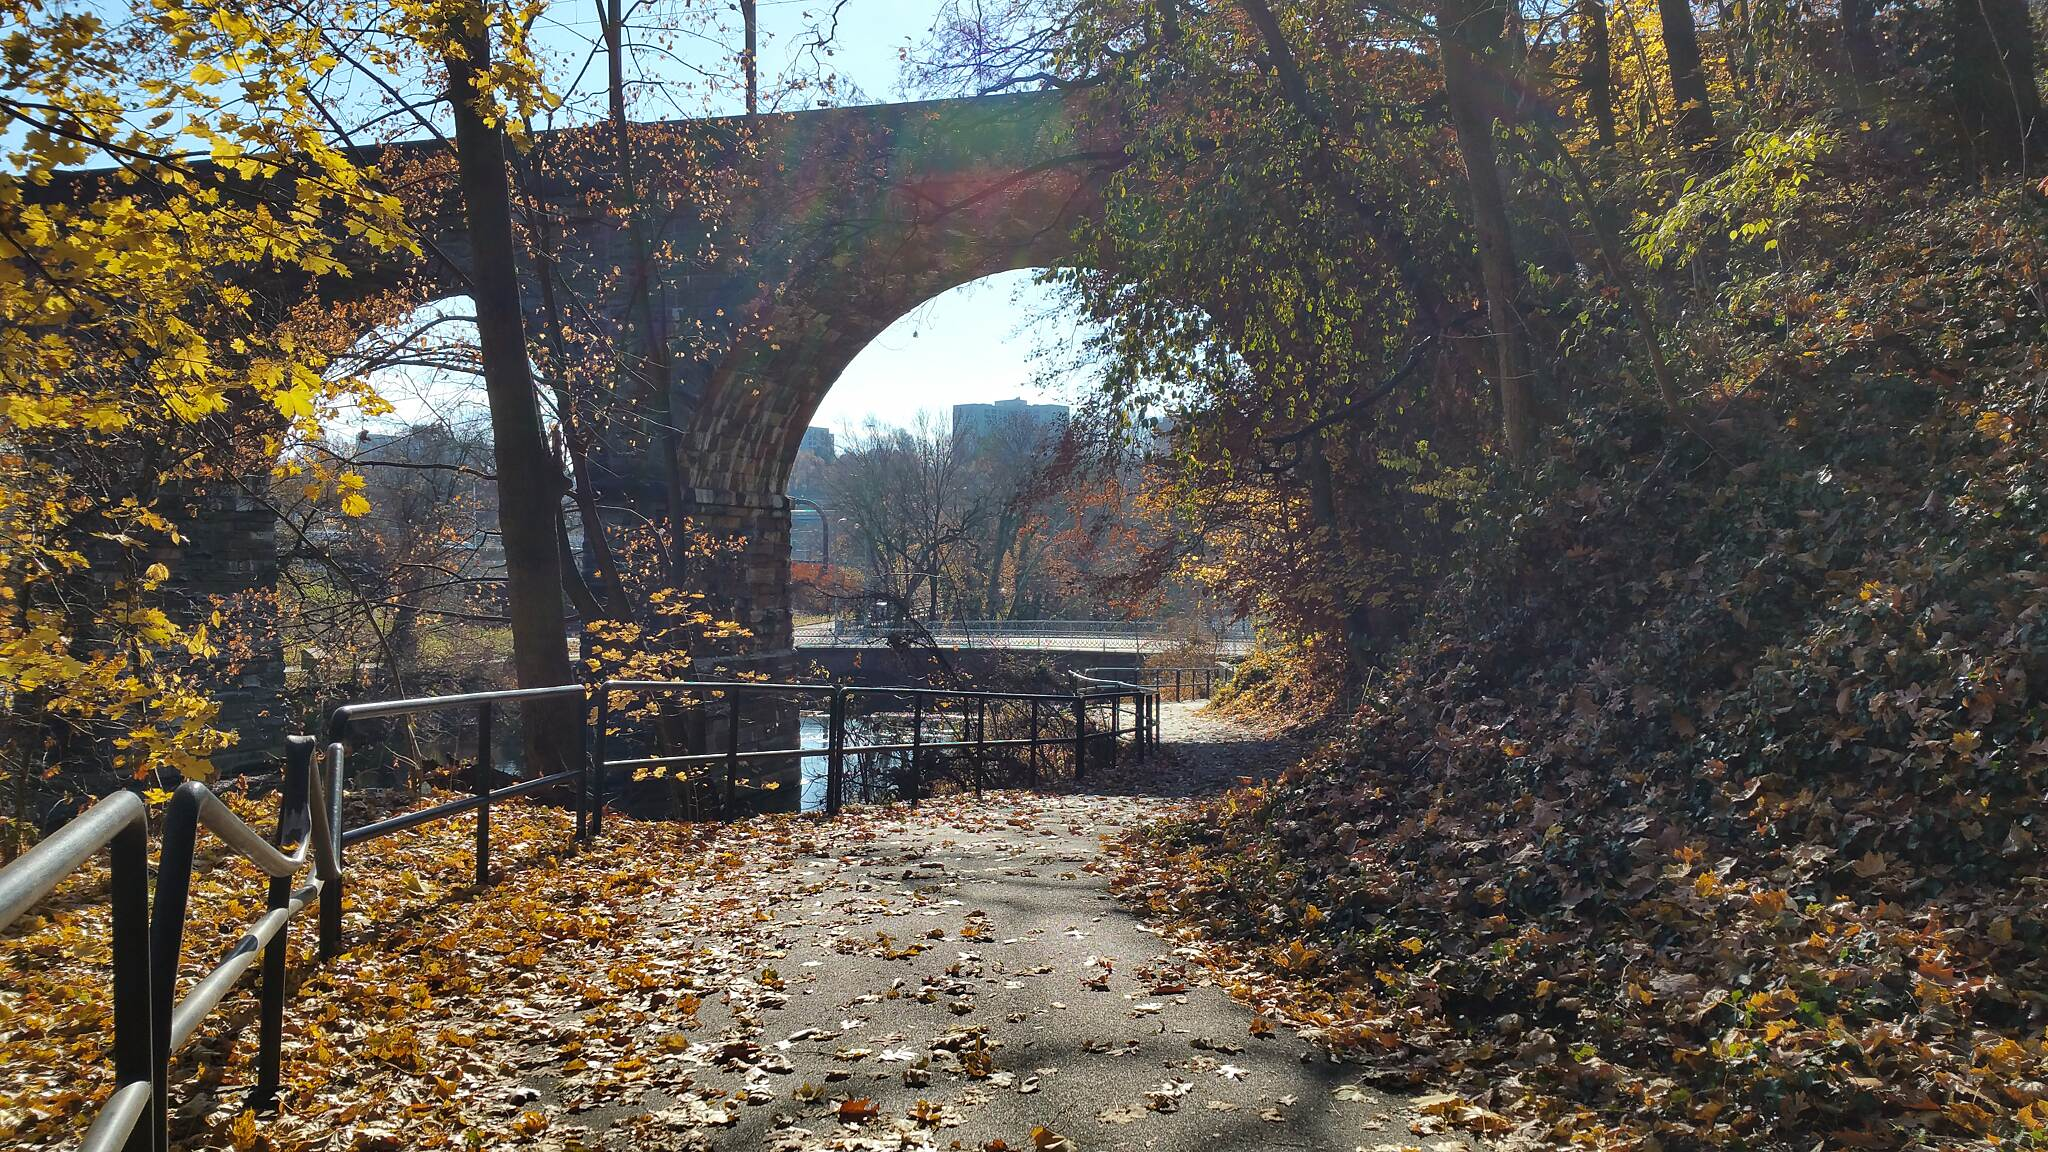 Lincoln Drive Trail  The Winding Trail  The photo is more fall like then an early December day. The bridge is the old Reading Railroad and Ridge Ave. is in the background. Cross over Ridge Ave. make a left go about 50 ft. and make a hard right, you will run into Schuylkill River Nature Trail.